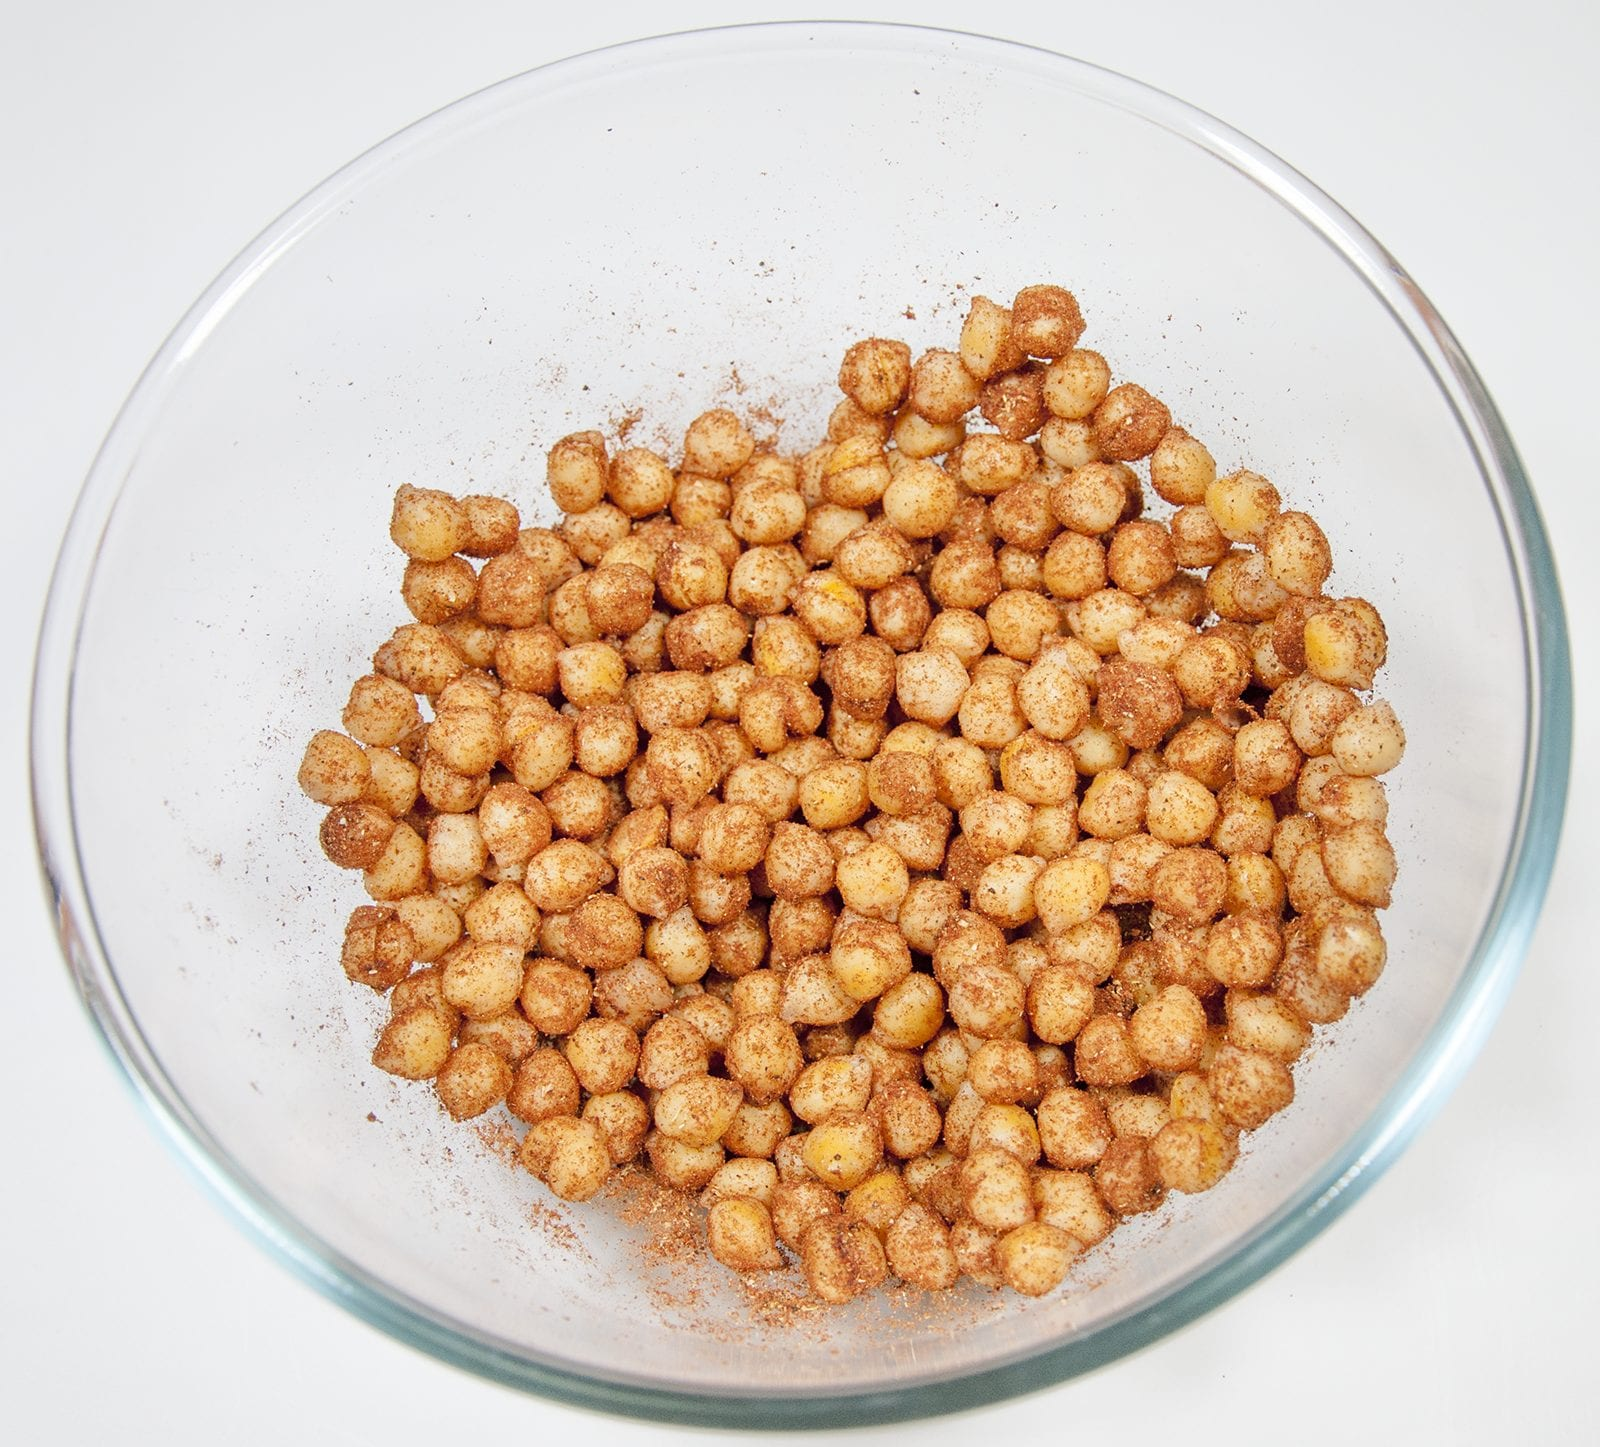 Mix in the spices | https://theyumyumclub.com/2019/06/18/moroccan-chickpea-salad/